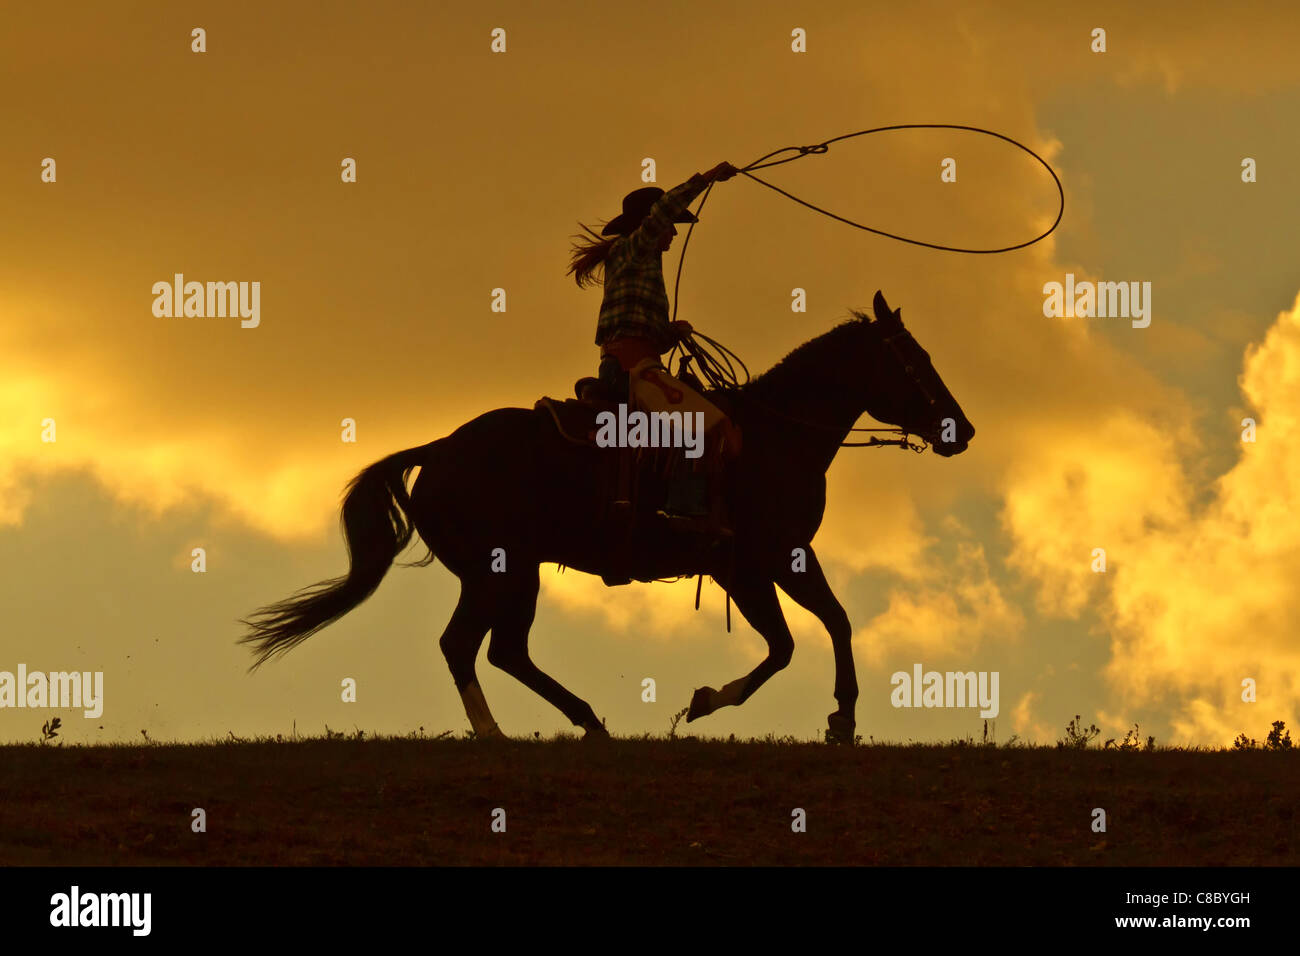 Cowgirl in silhouette with a lasso on a horse racing against a dramatic sky - Stock Image